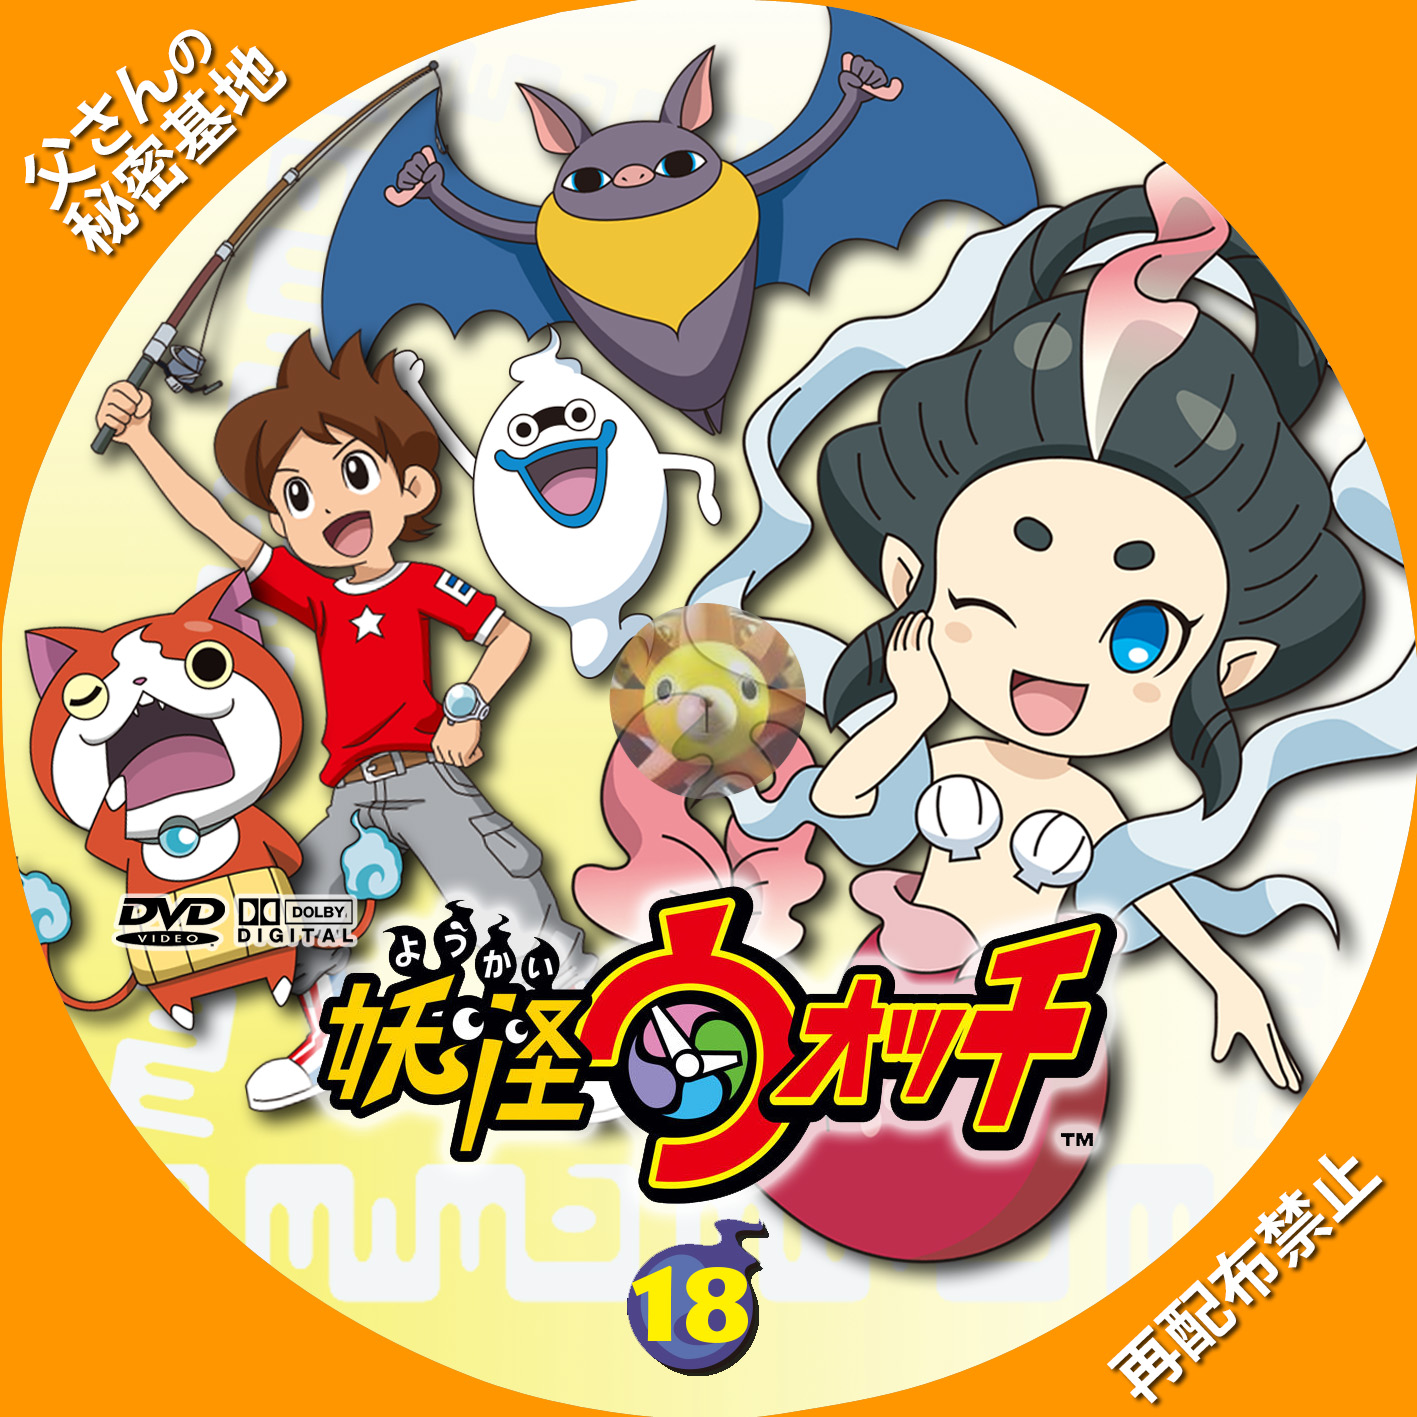 youkai-watch_18DVDb.jpg